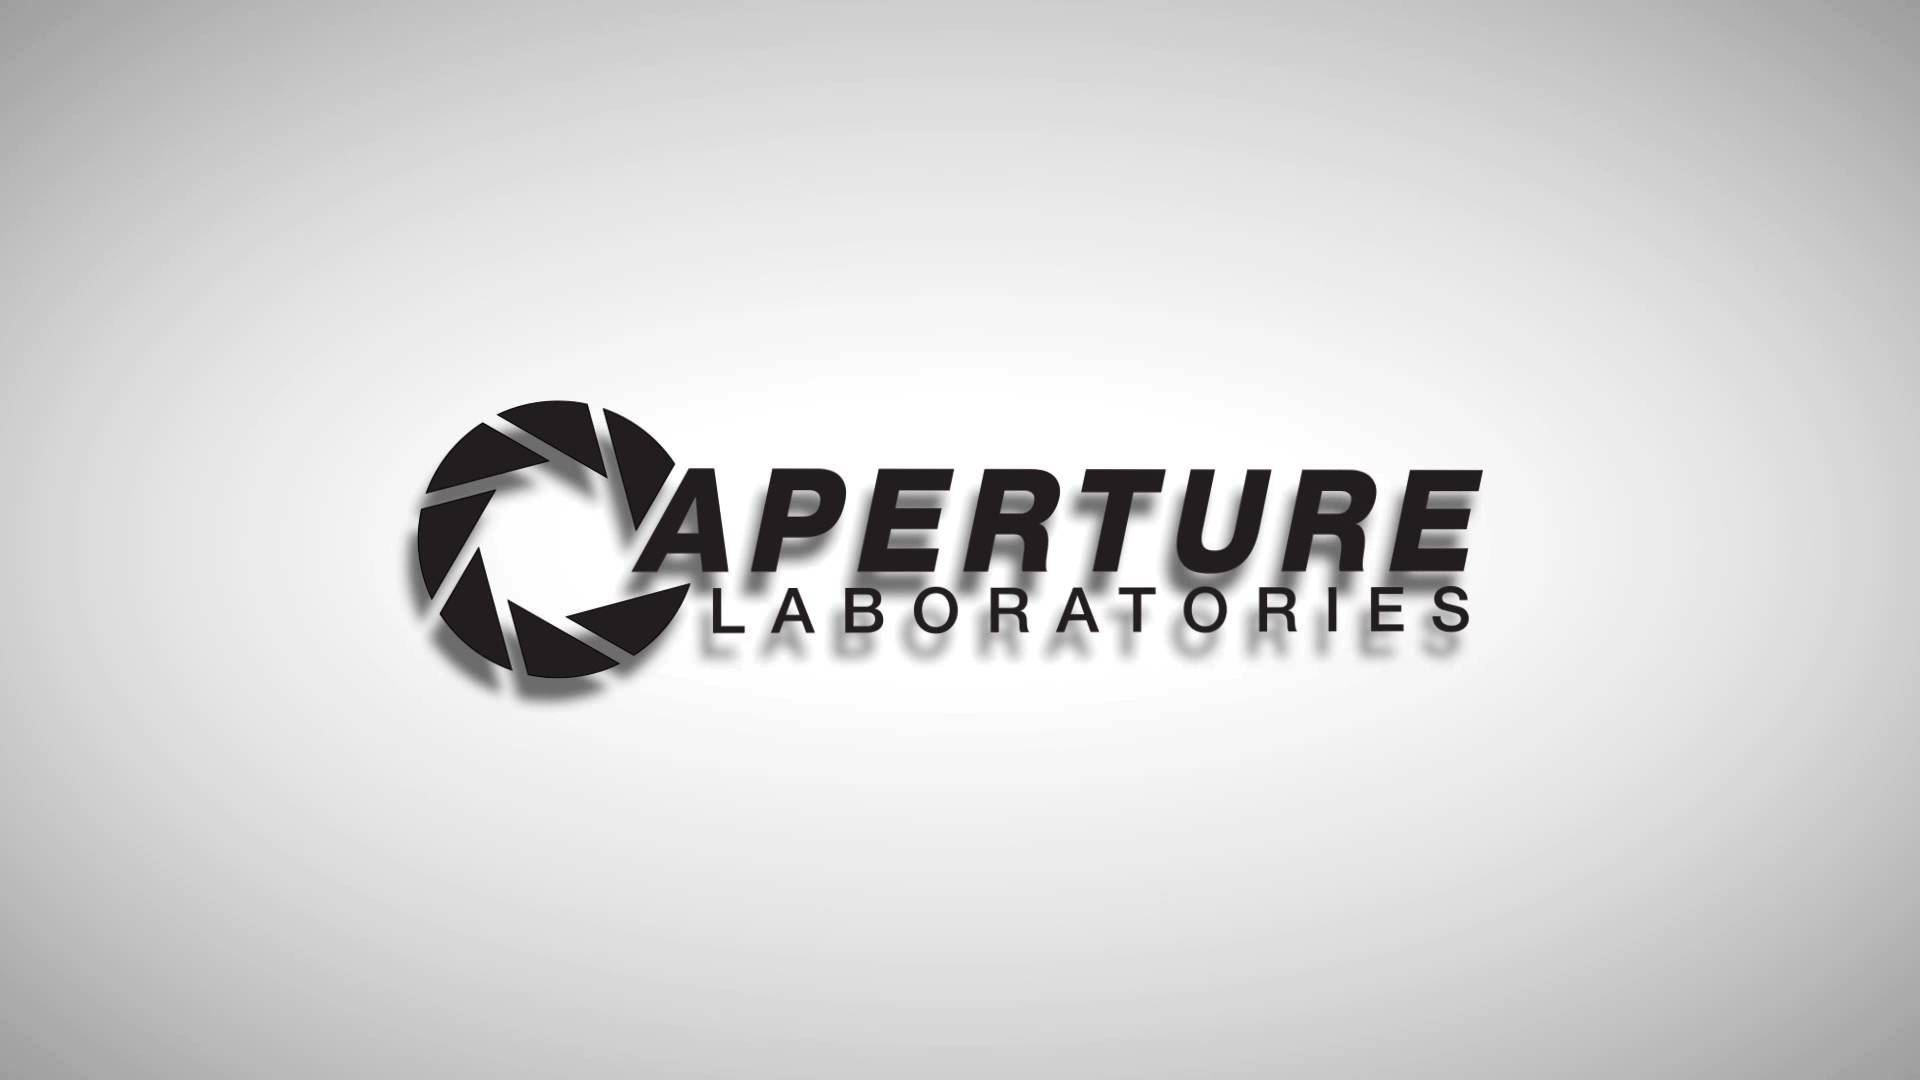 aperture science wallpapers - wallpaper cave